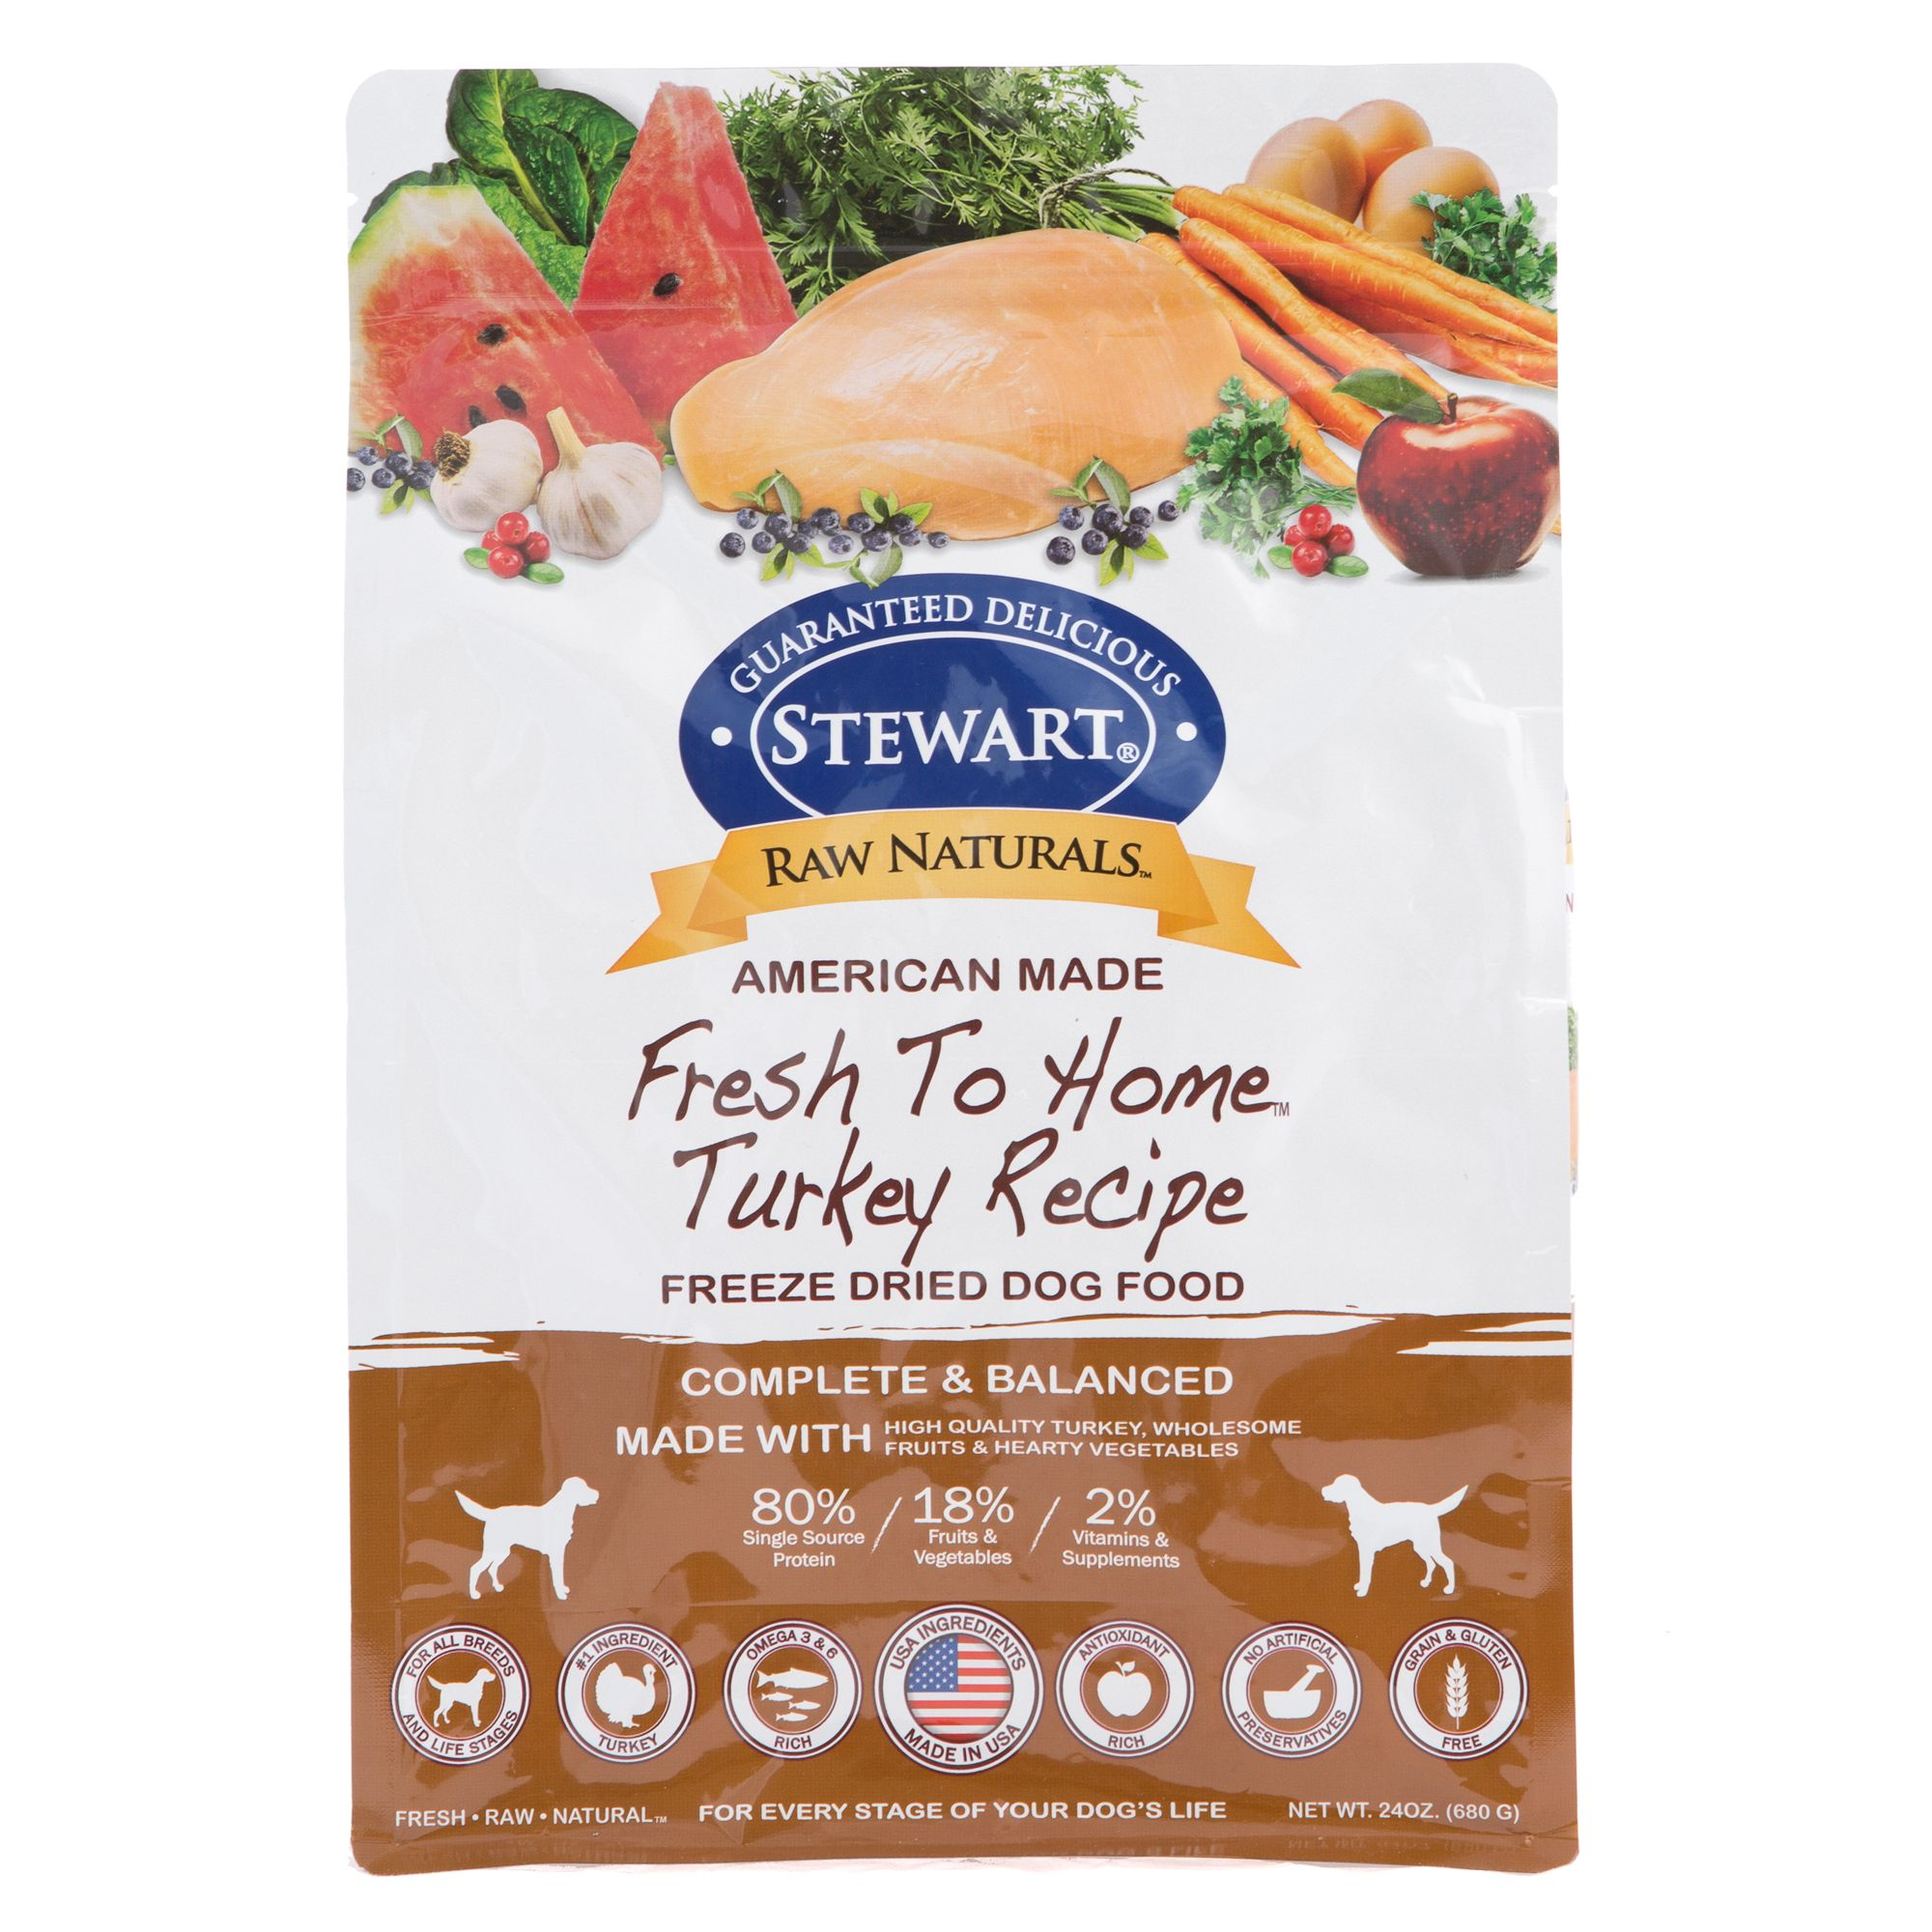 Stewart Raw Naturals Dog Food Freeze Dried Turkey Size 24 Oz